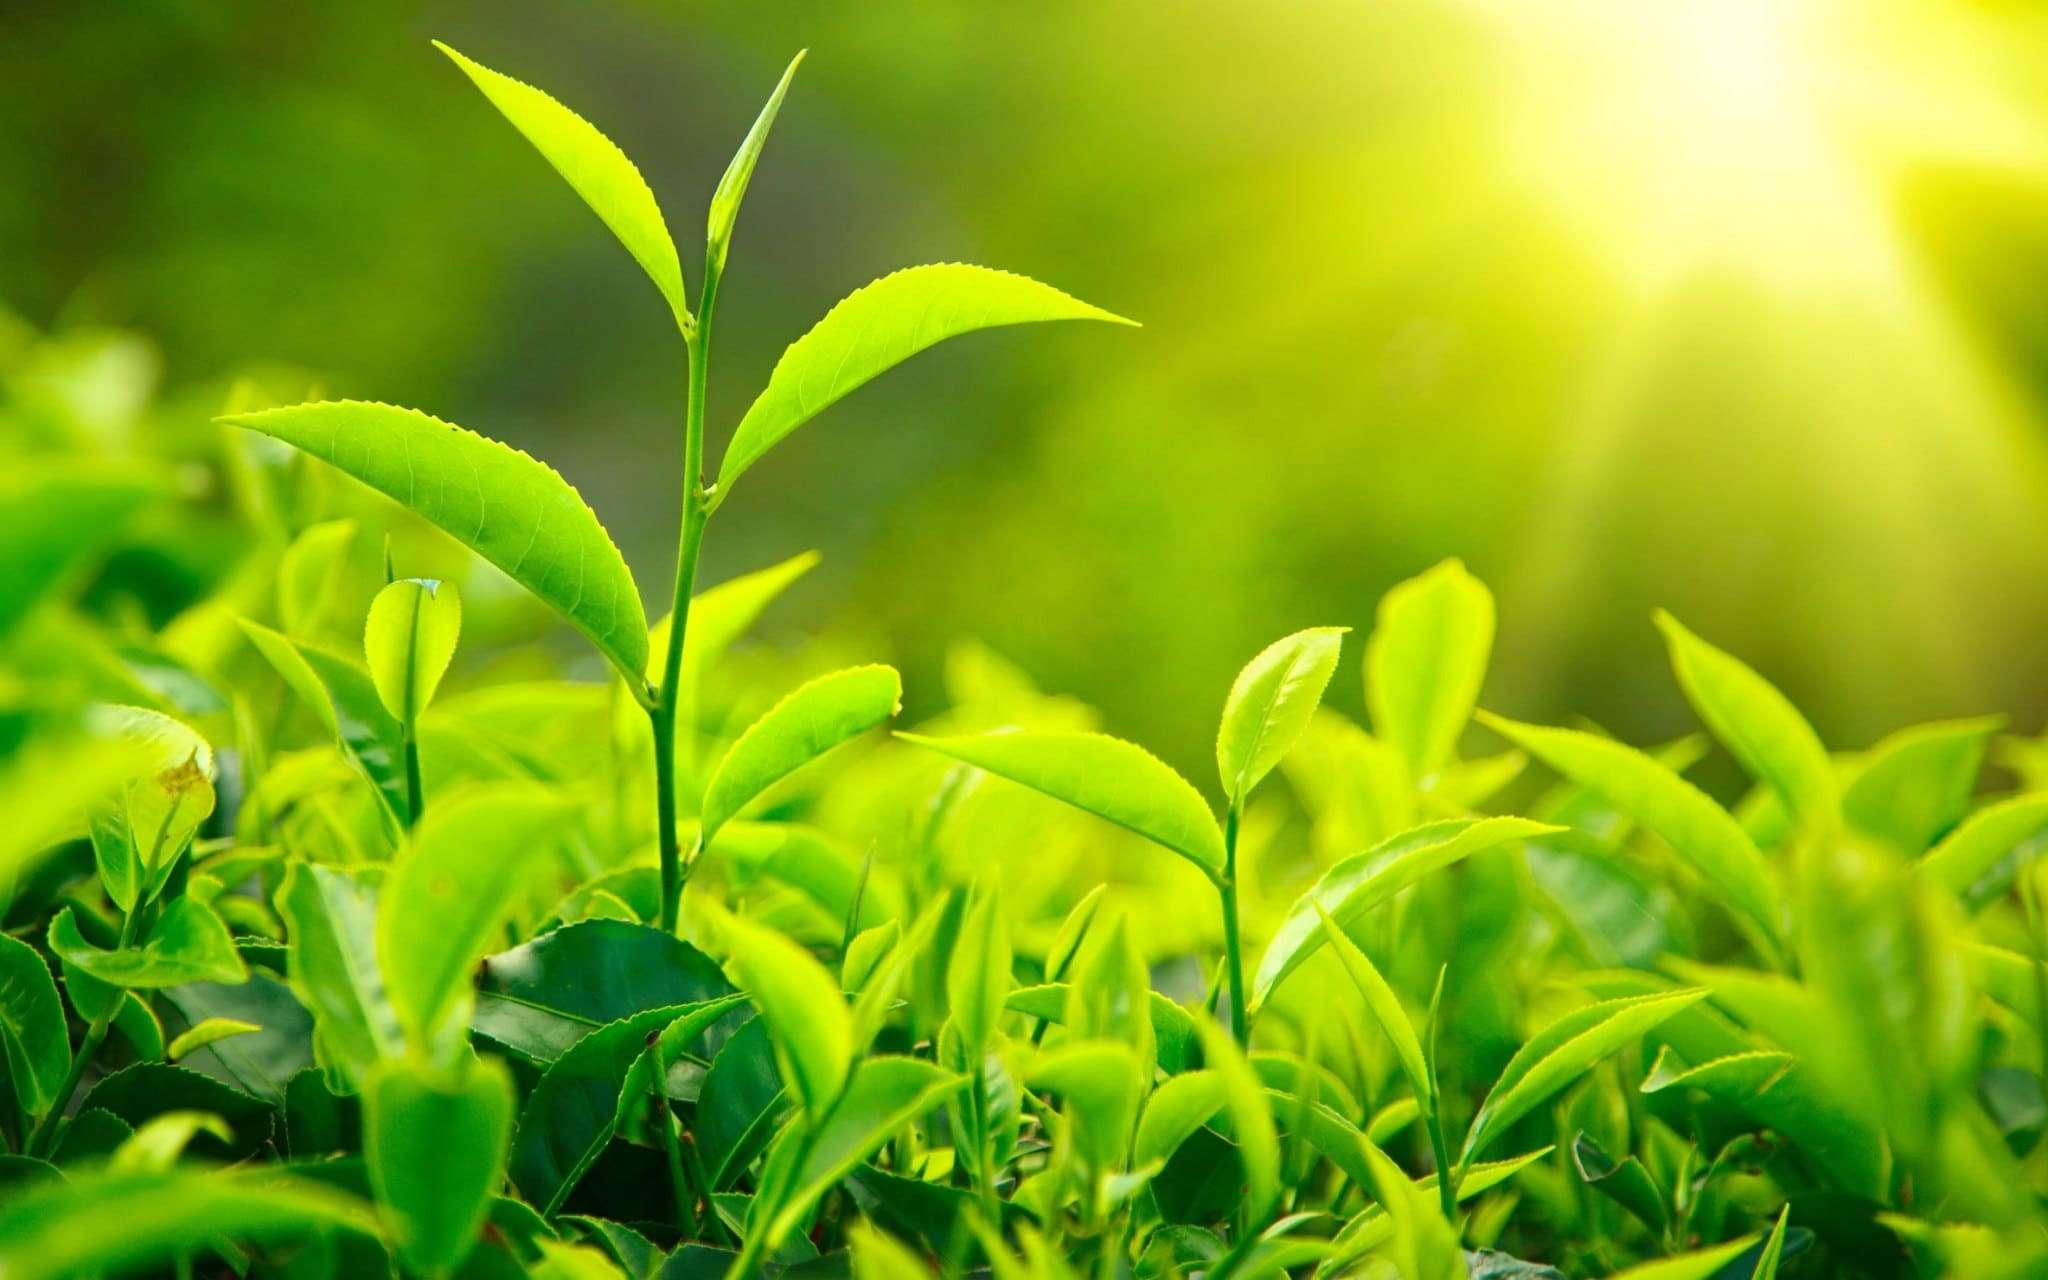 Green Tea: Healing And Serenity In A Cup - Photo of young tea leaves in sunlight